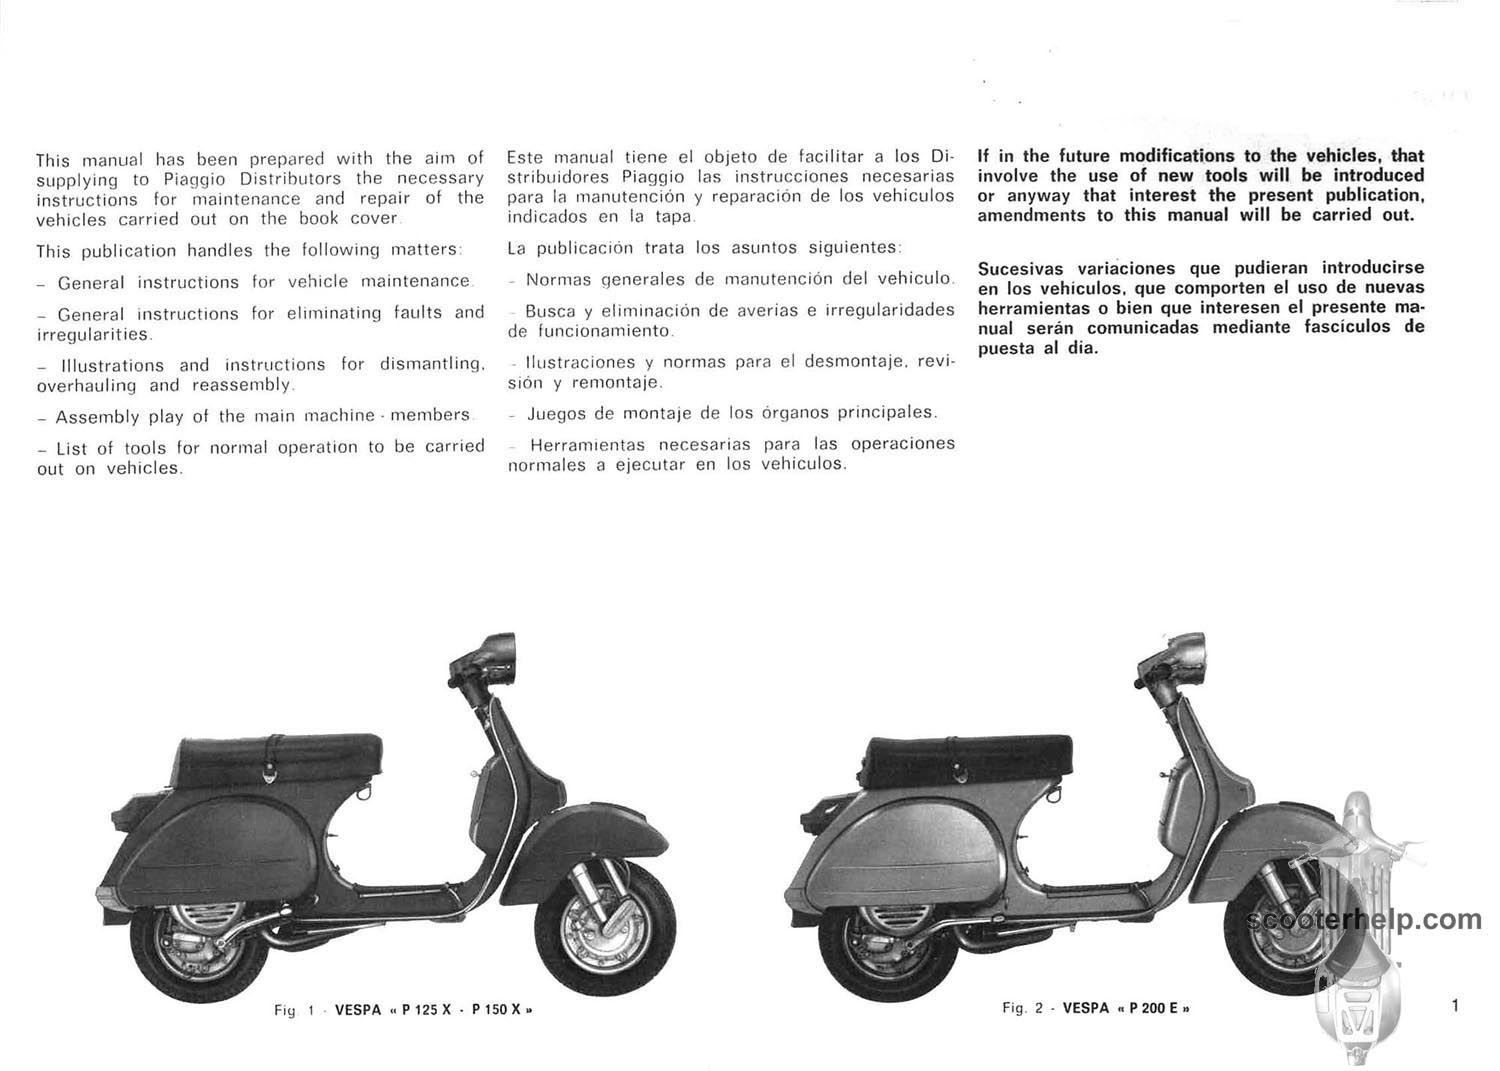 p125 p200 factory repair manual rh scooterhelp com service manual vespa service manual vespa primavera 125